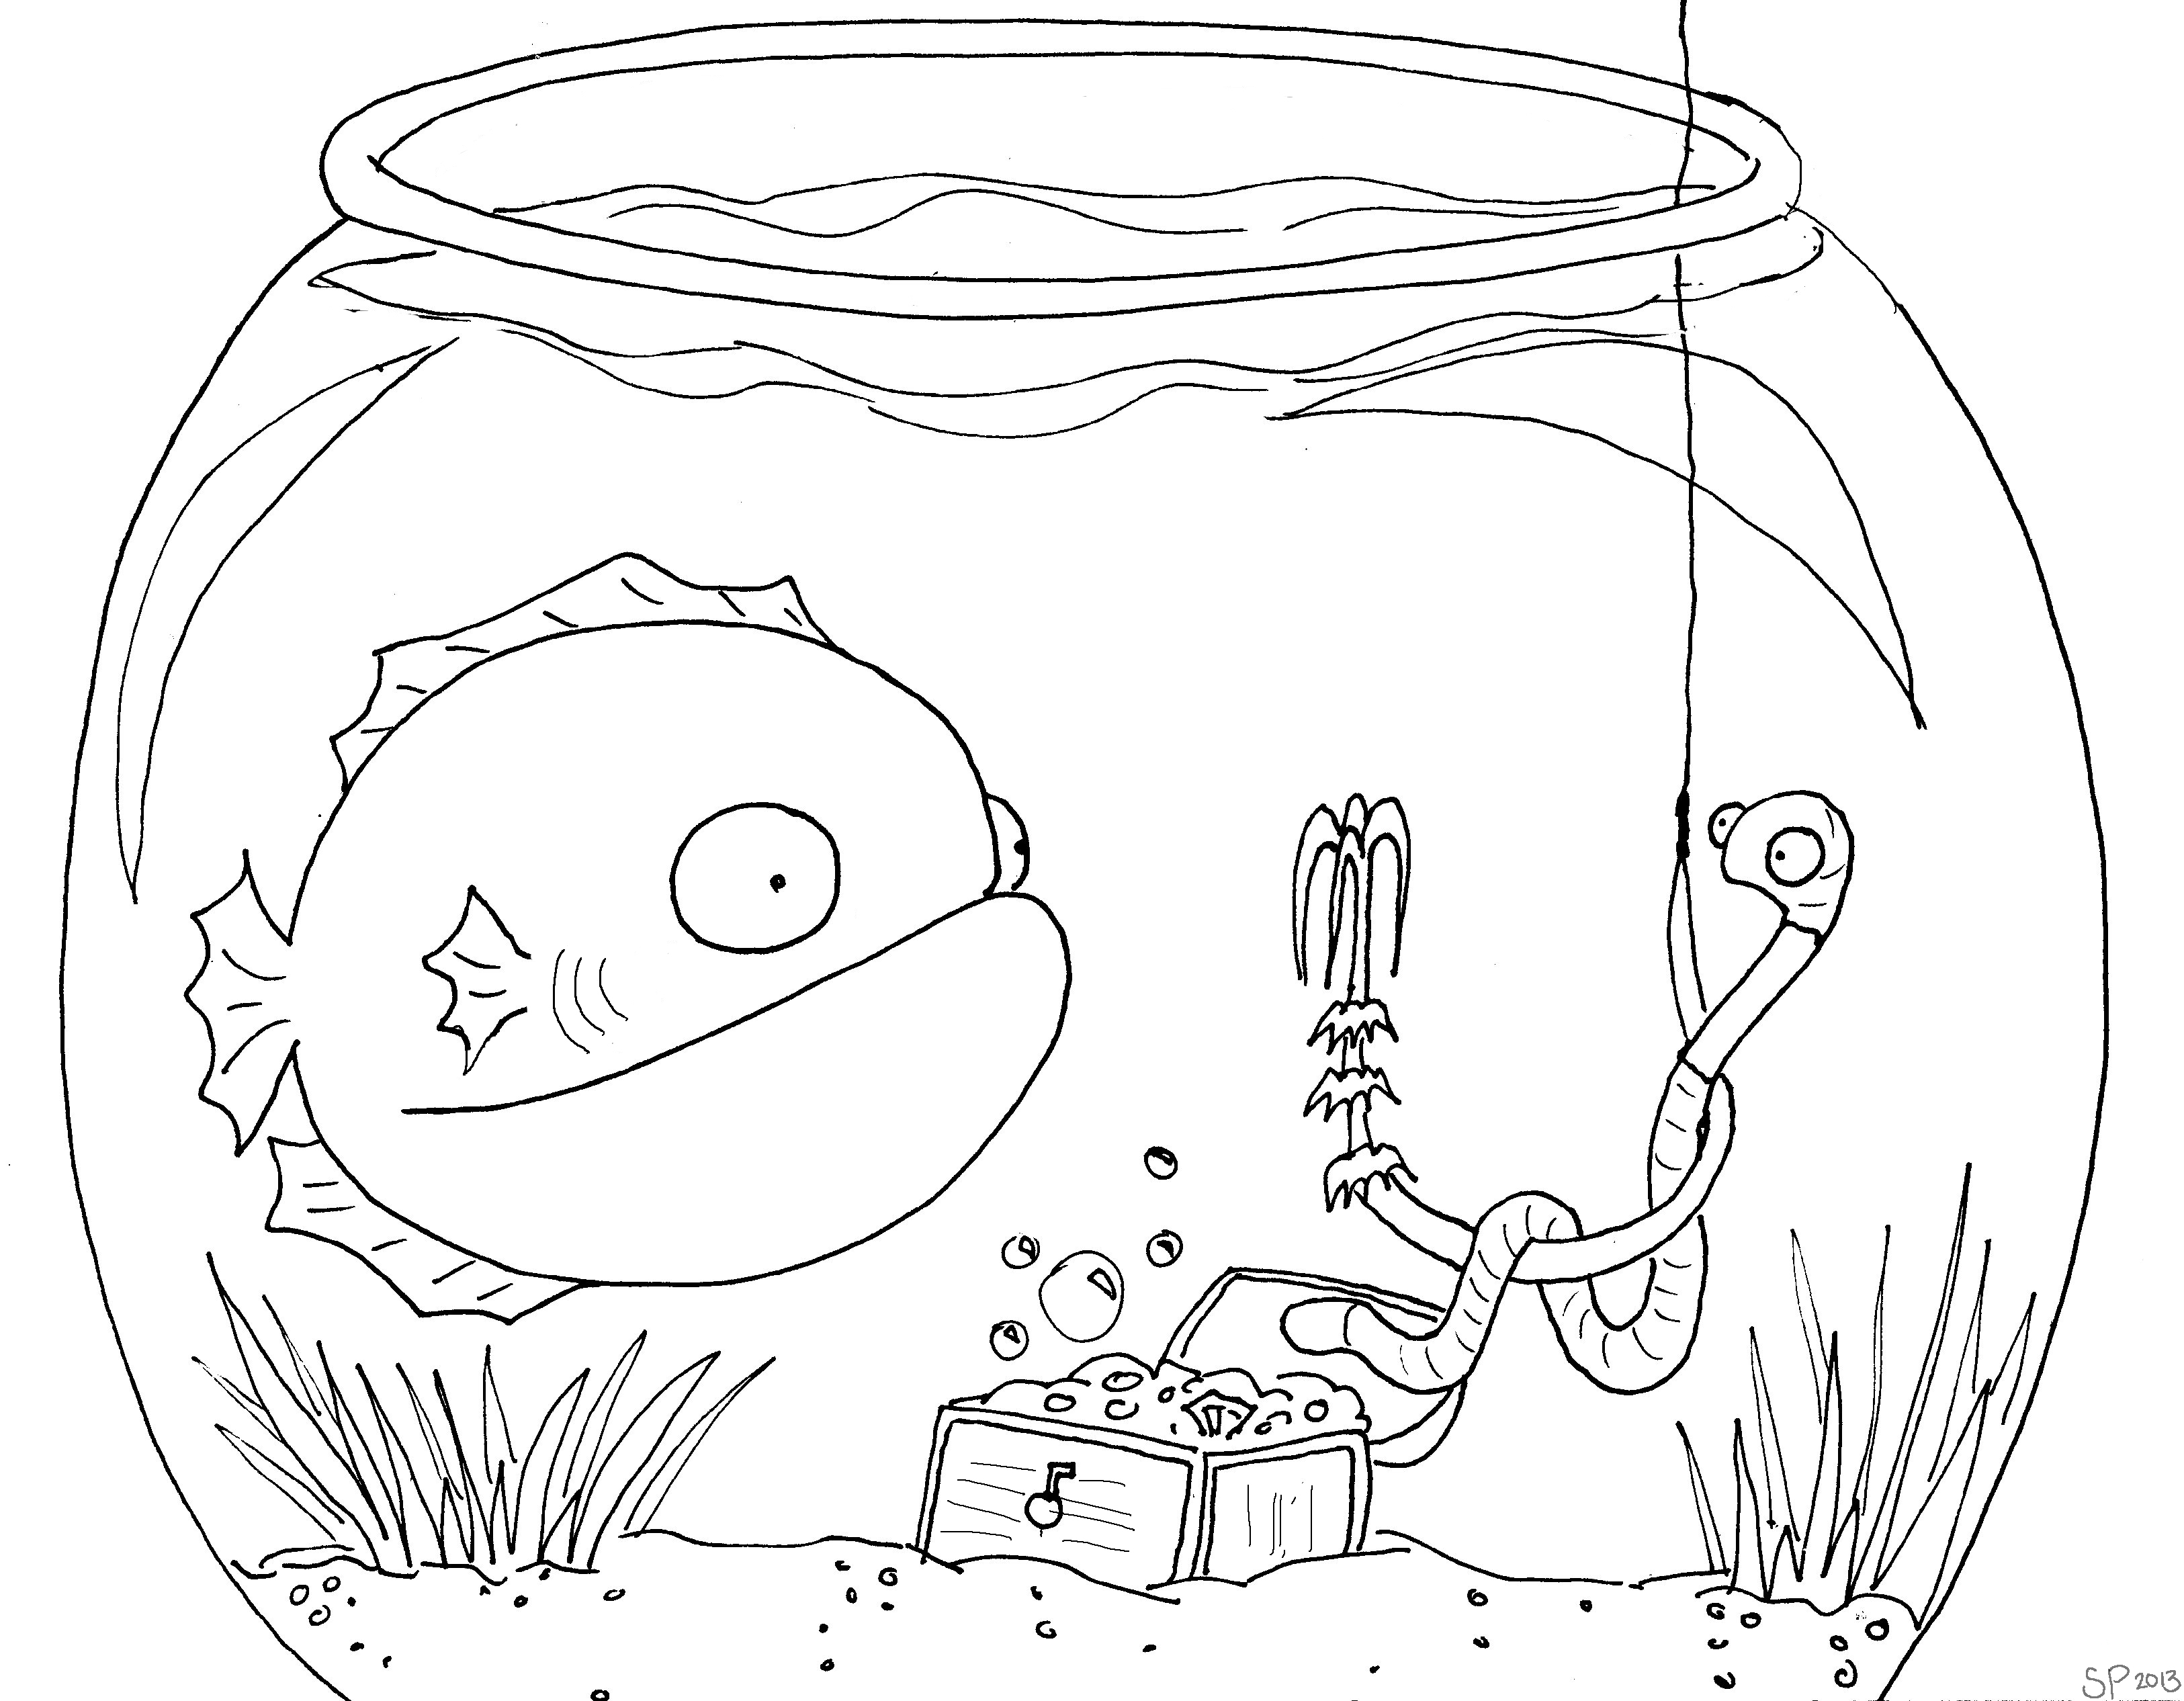 cartoon underwater coloring pages underwater life coloring page free printable coloring pages underwater cartoon coloring pages